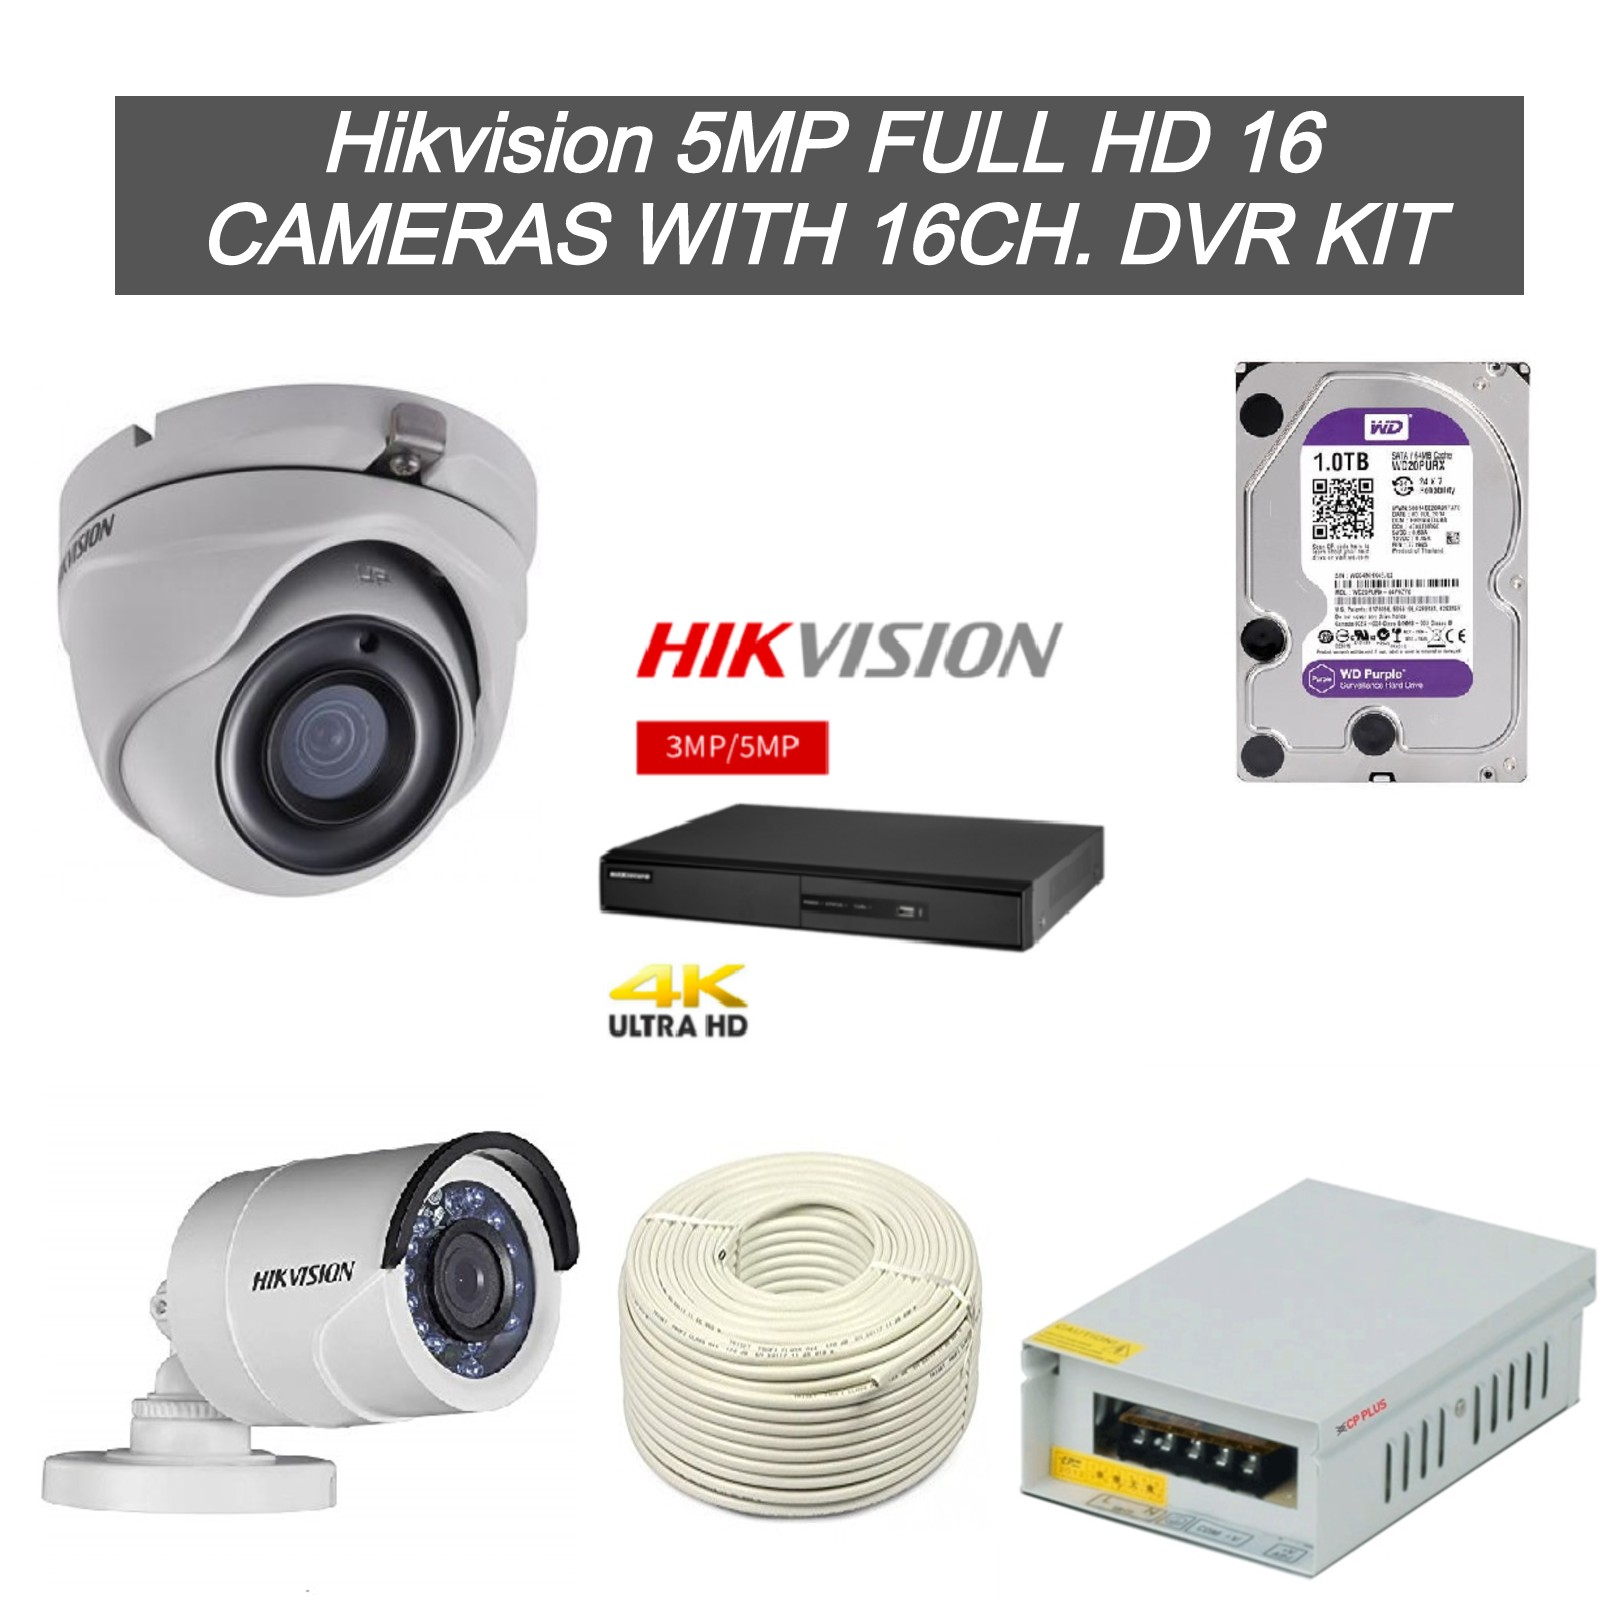 HIKVISION 5MP FULL HD 16 CCTV CAMERAS WITH 16CH. DVR KIT